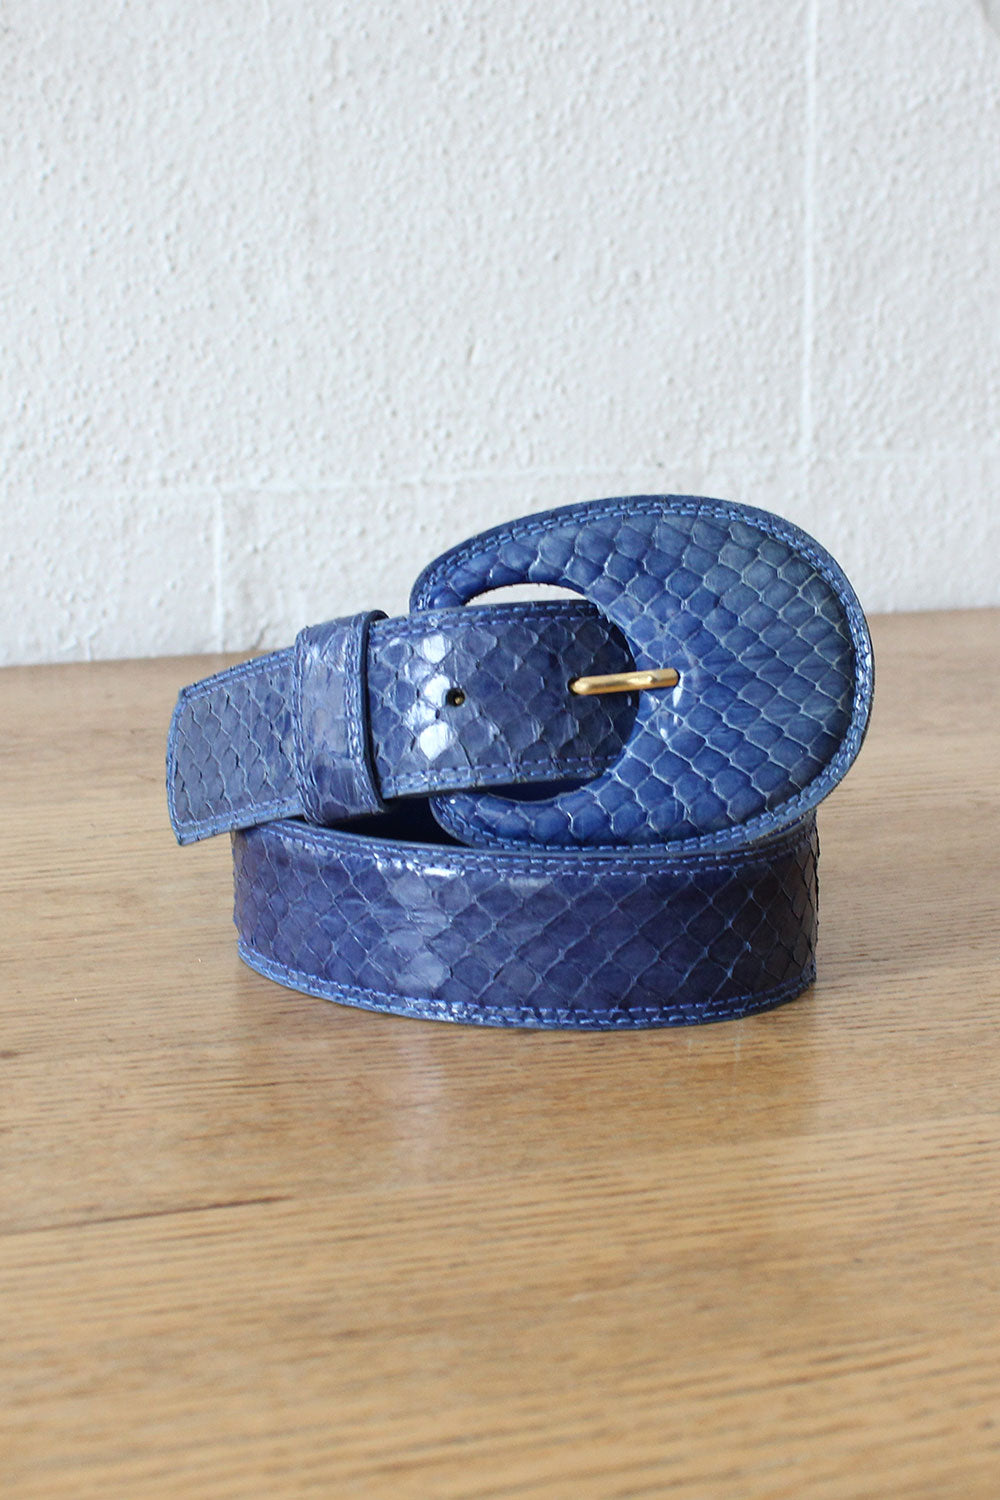 Rexx Blue Snakeskin Belt